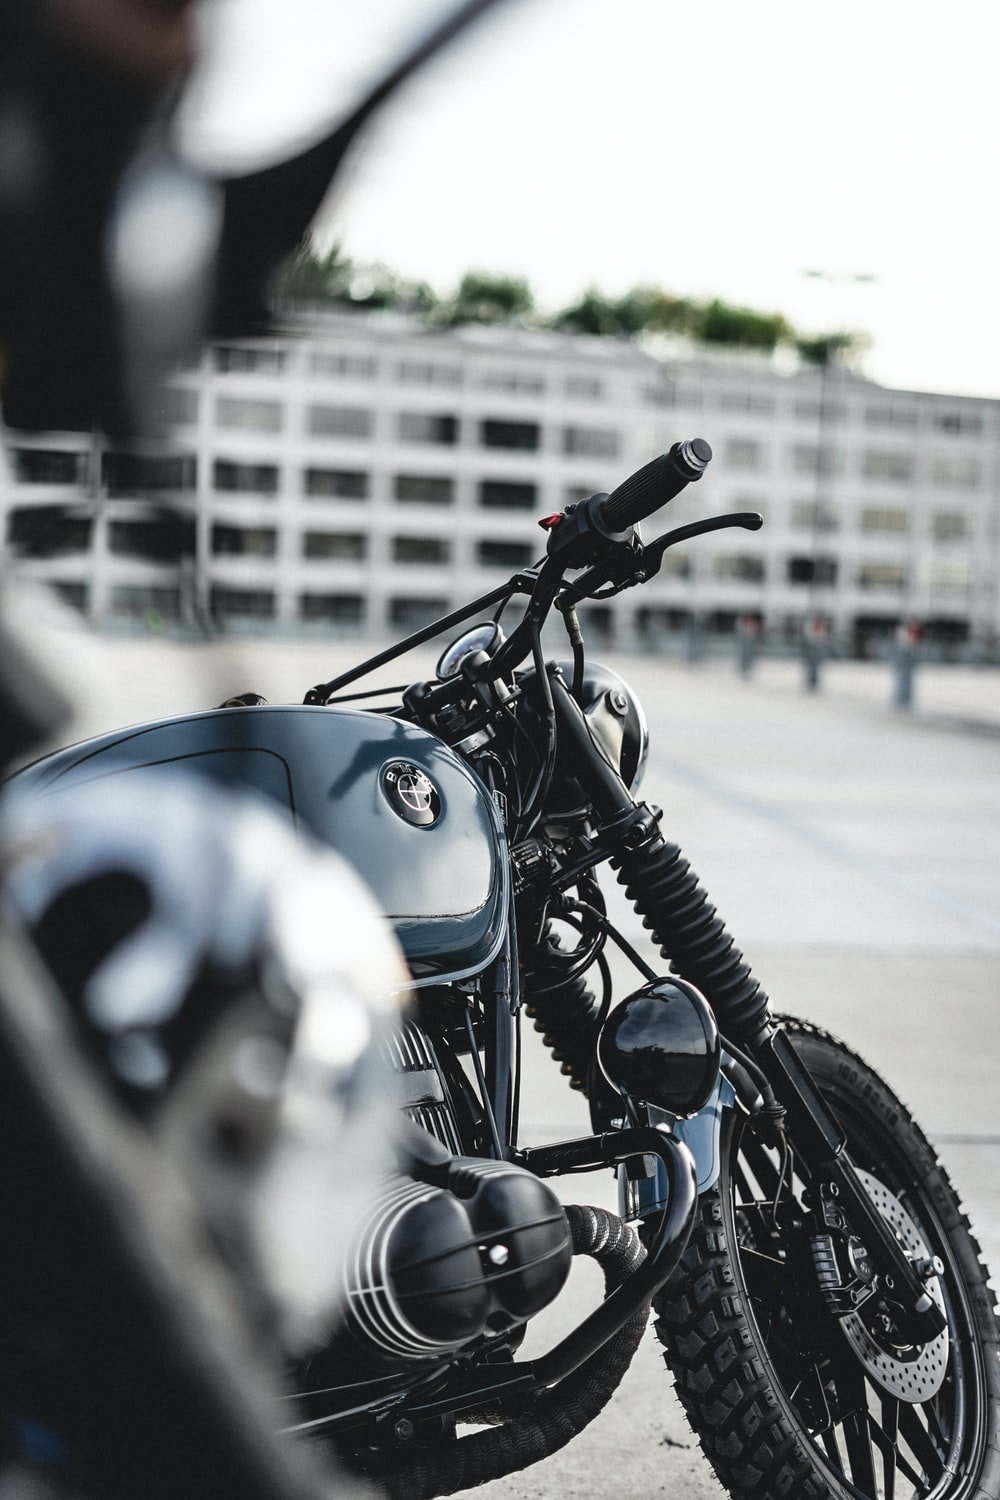 motorcycle parked near fence